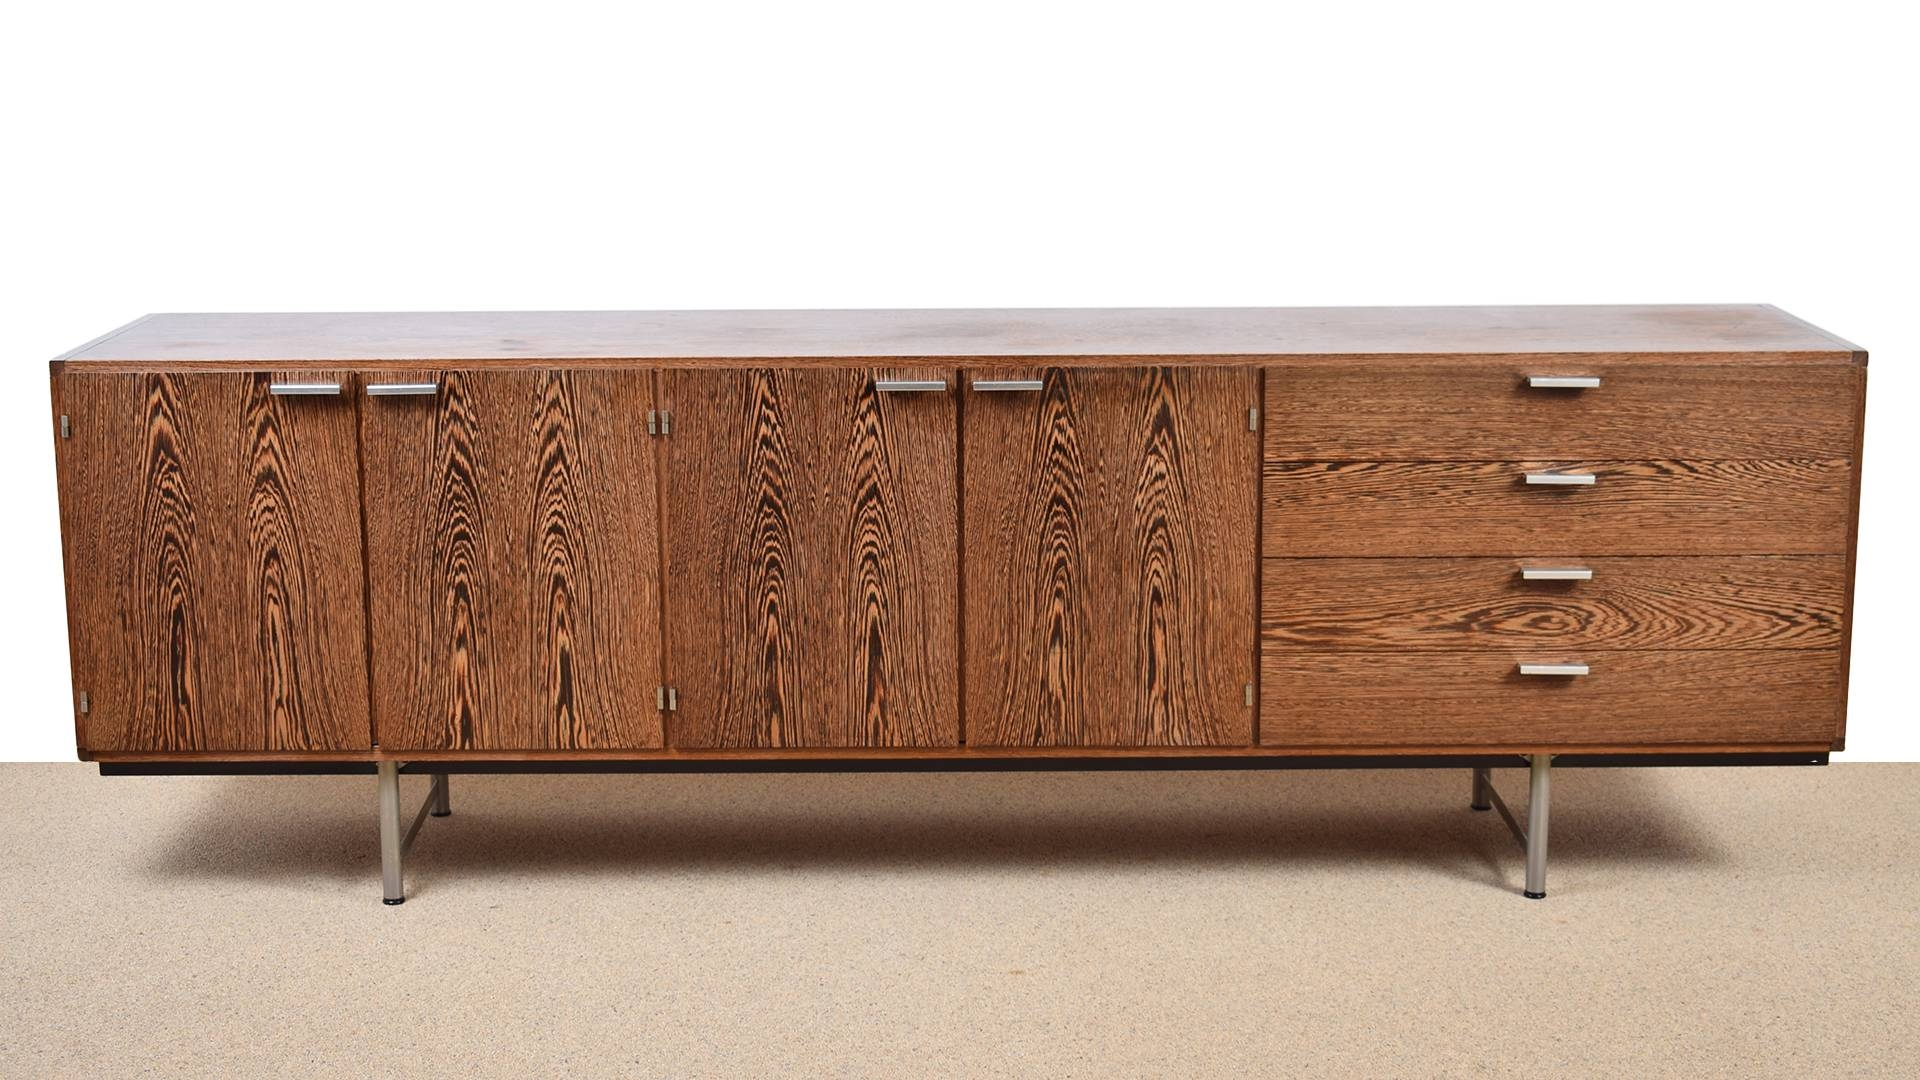 Wengé Sideboardcees Braakman For Pastoe, 1960S For Sale At Pamono with Wenge Sideboards (Image 15 of 15)